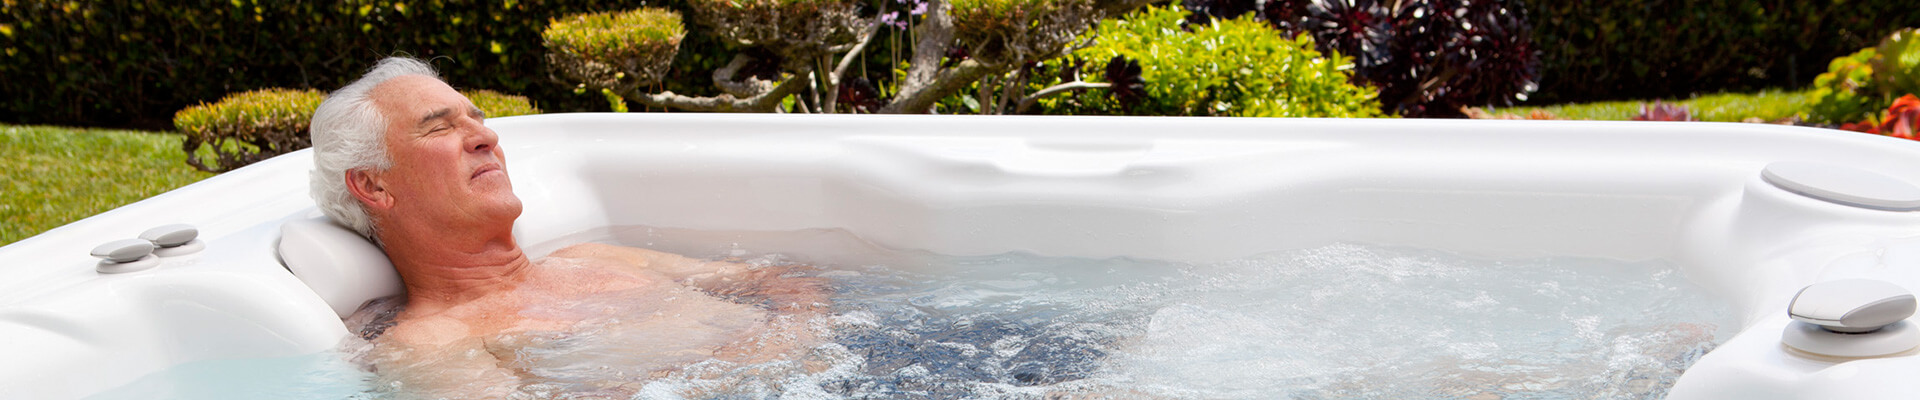 Eliminate Tension Pain with a Relaxing Dip in the Spa, Hot Tub Prices Maryland Heights